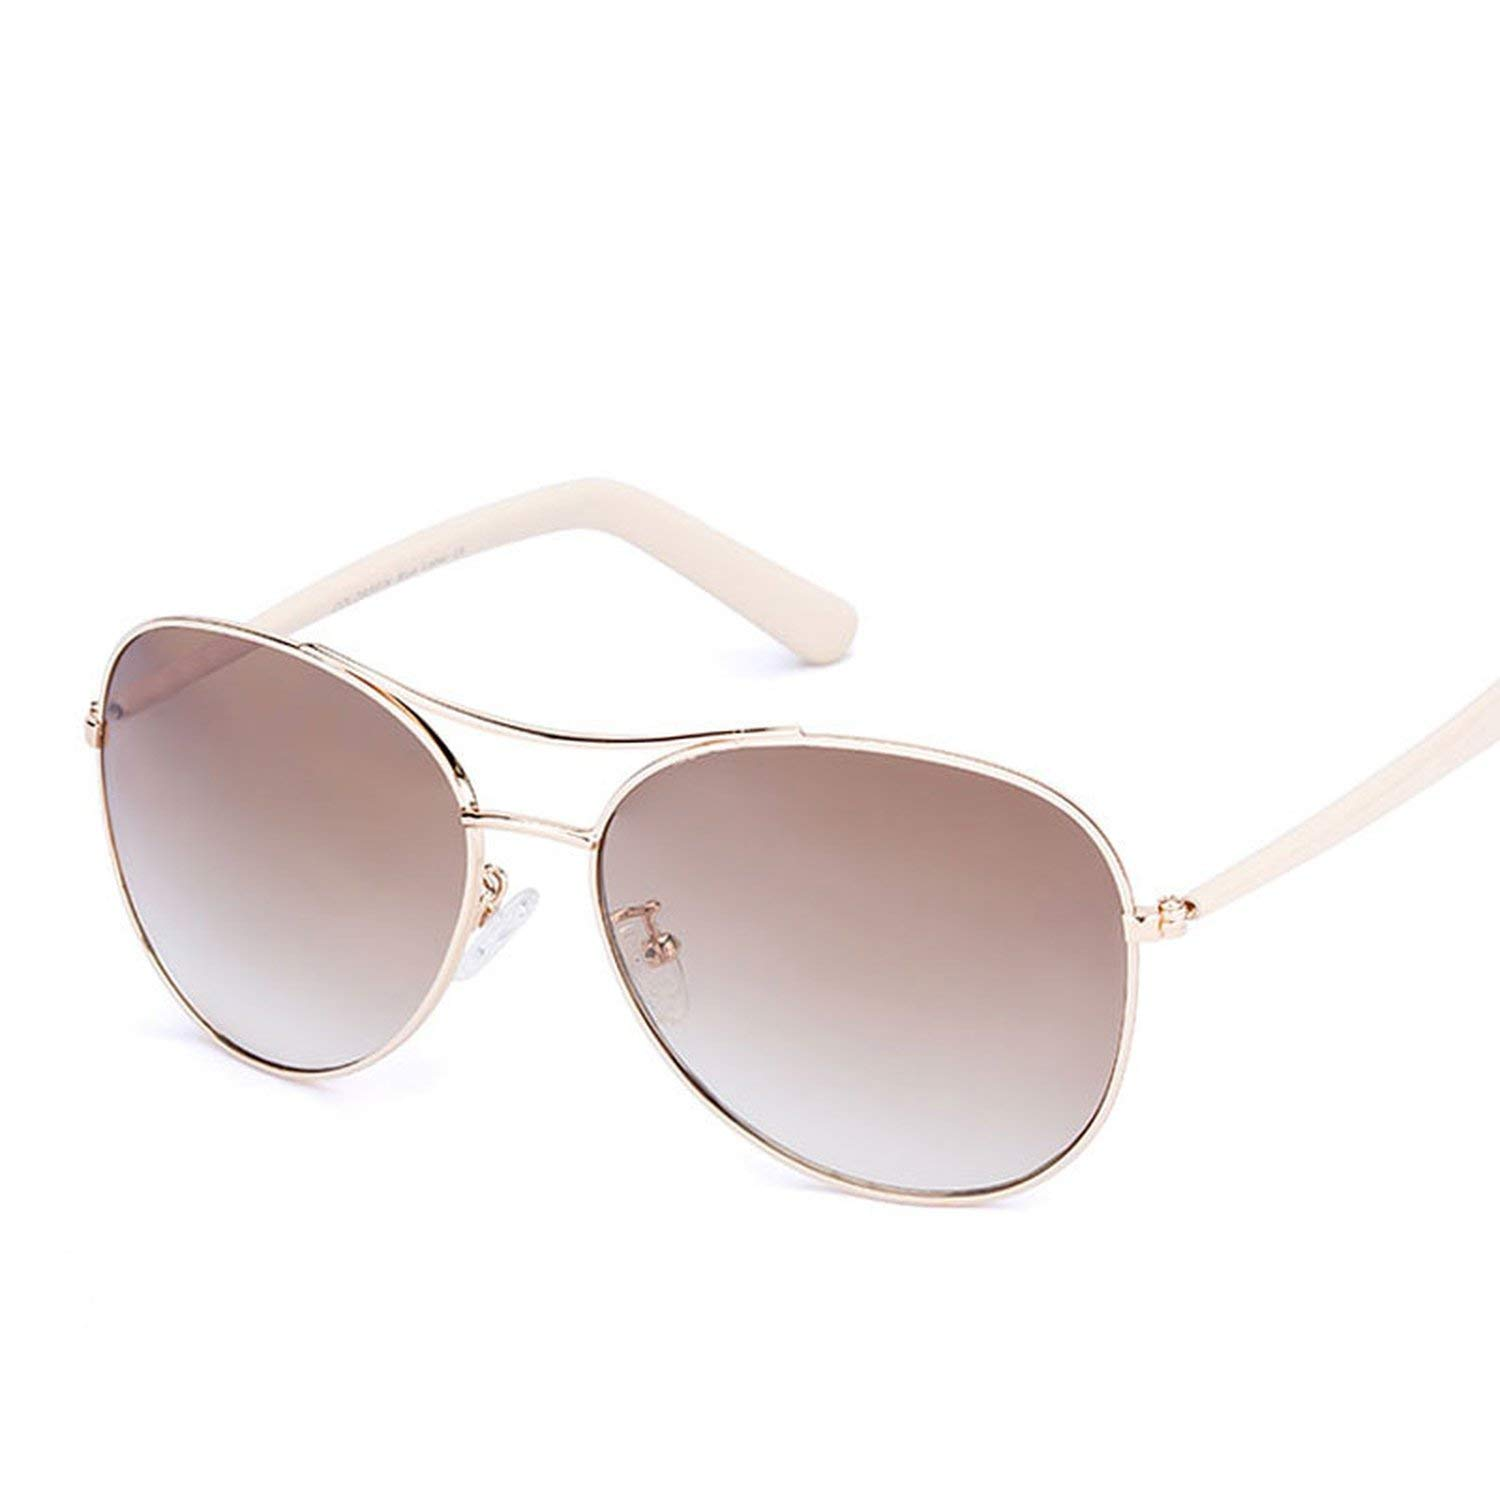 Amazon.com: Sunglasses Women Gold Frame Classic Female ...